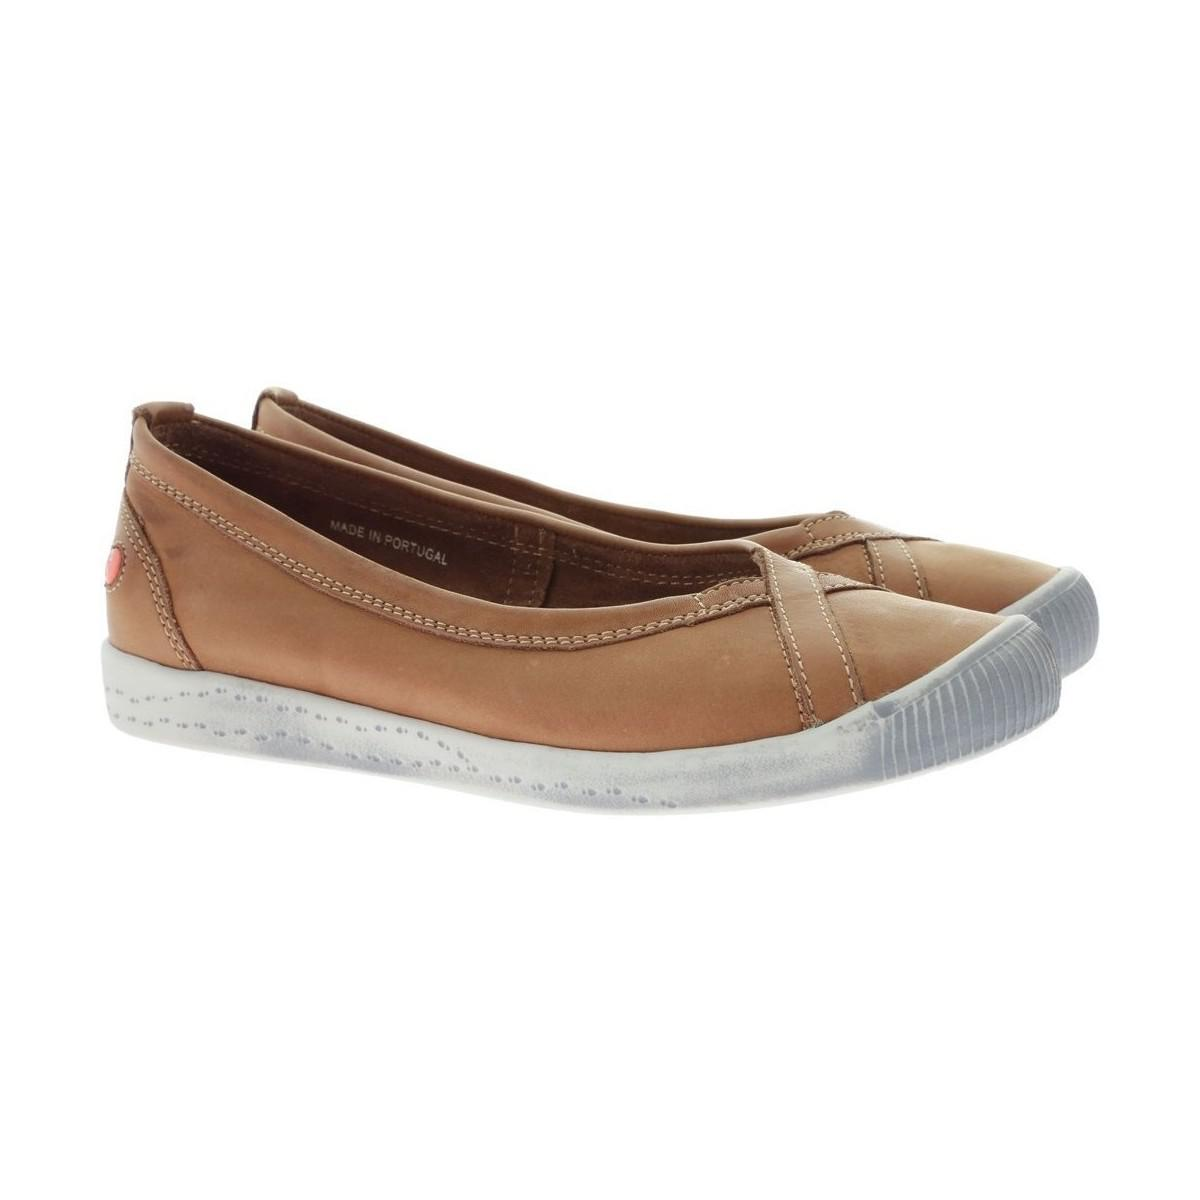 reputable site 13d08 1ca2a softinos-brown-Ilma-Womens-Shoes-pumps-Ballerinas-In-Brown.jpeg